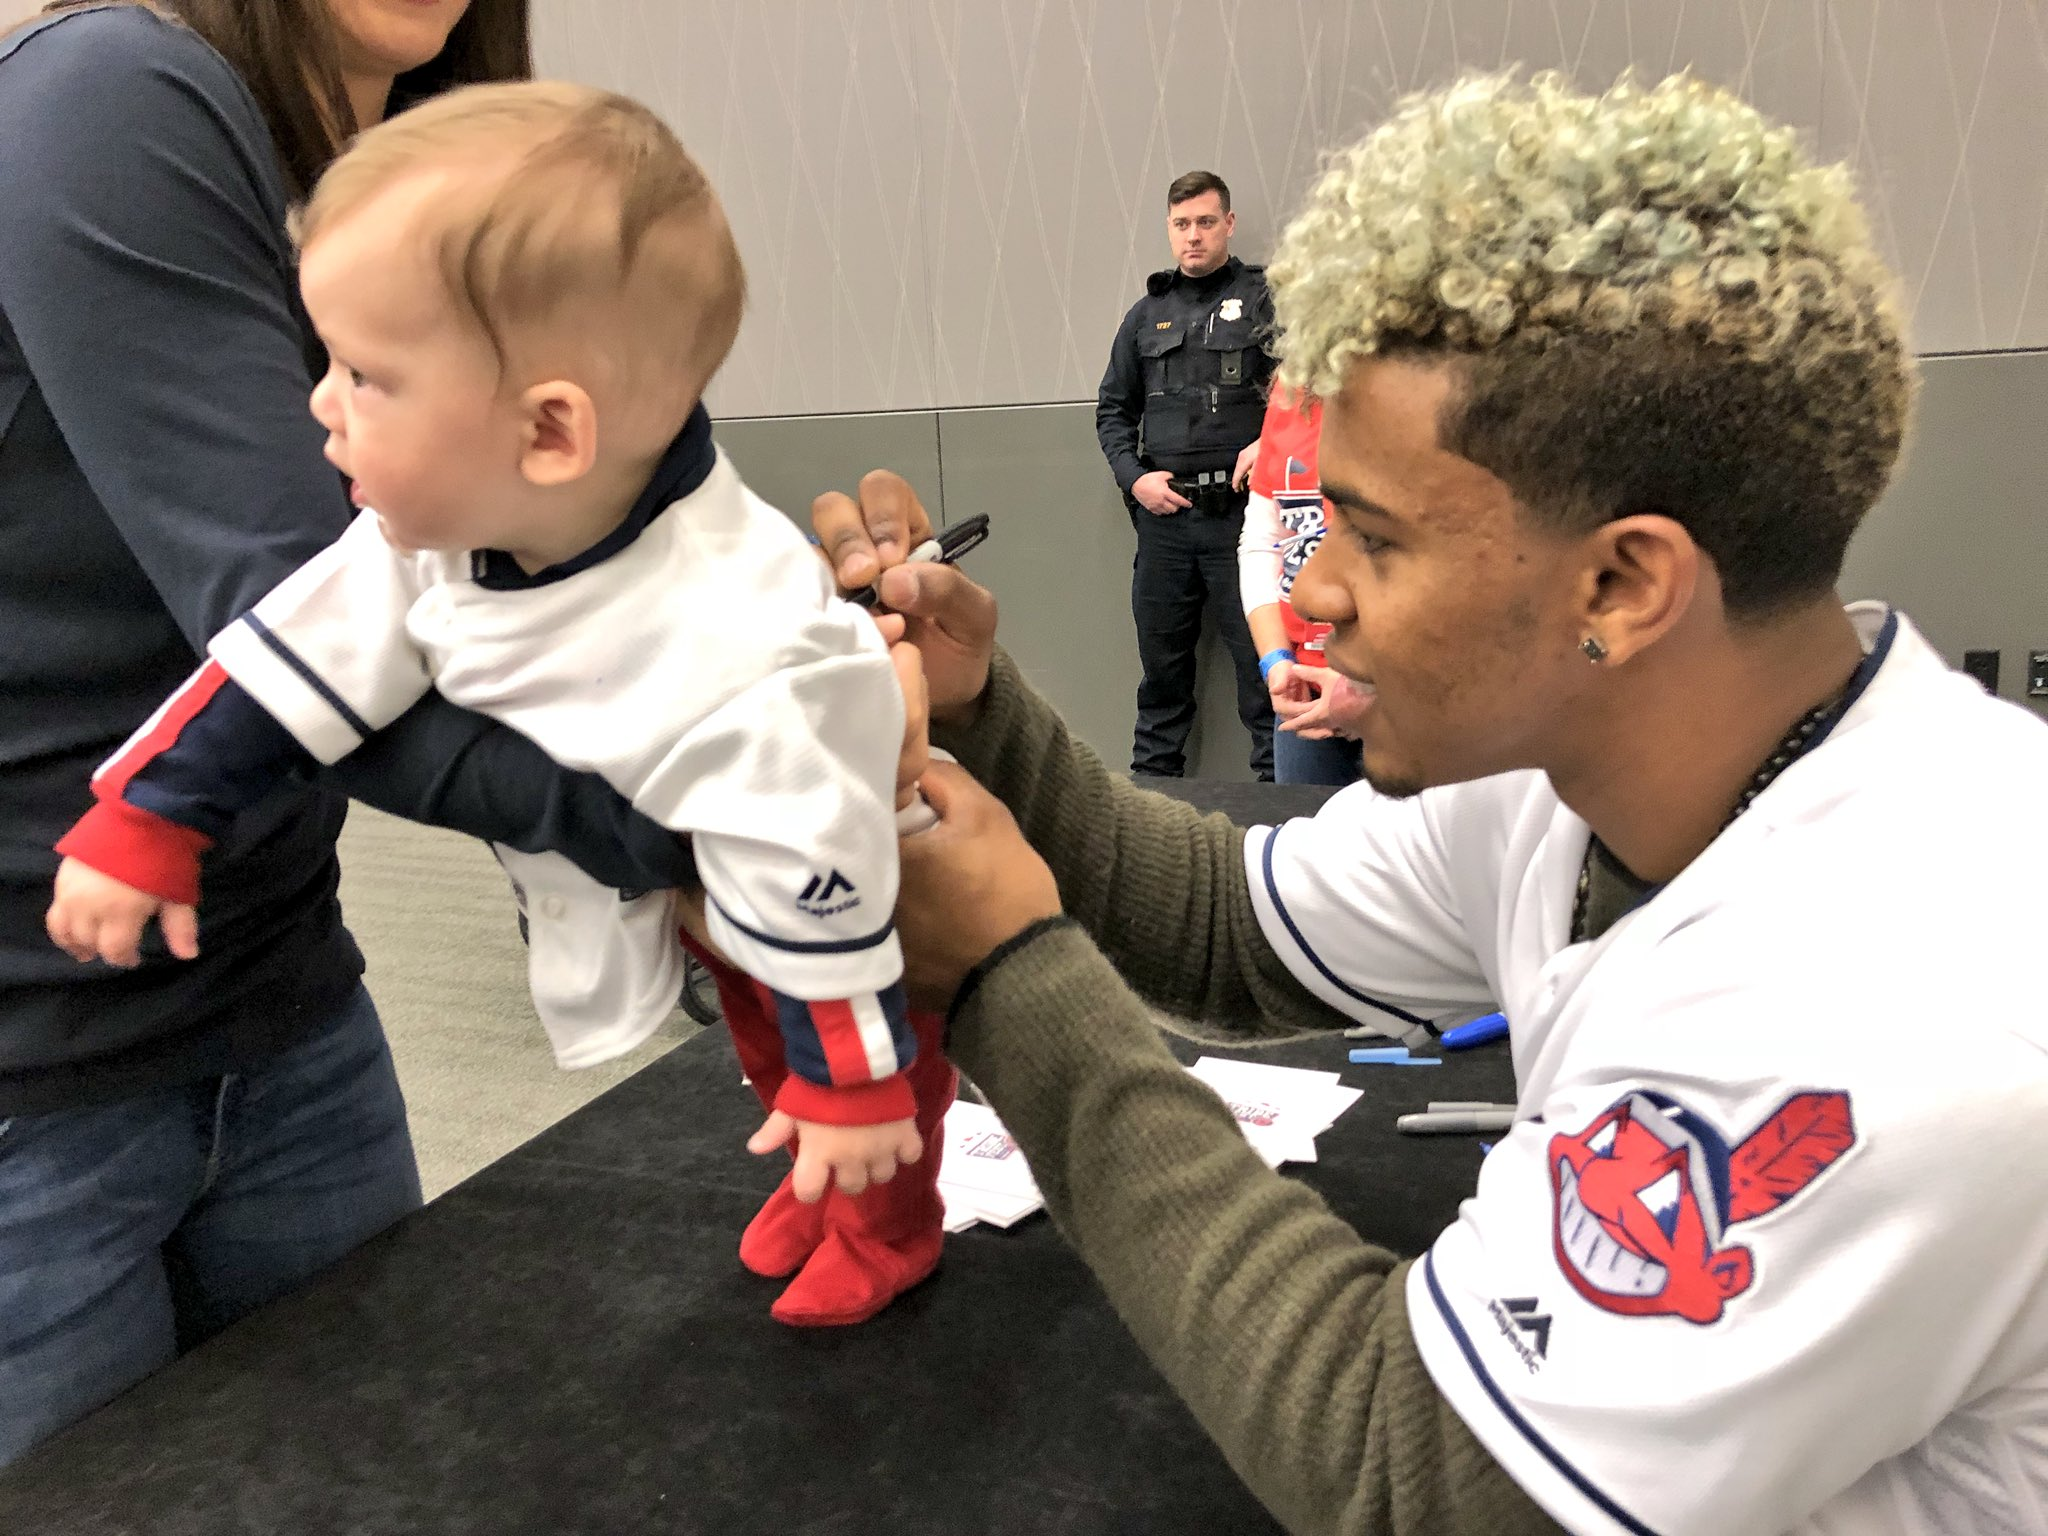 Hang on to that jersey, kid. #TribeFest https://t.co/ivHoEQgfJQ